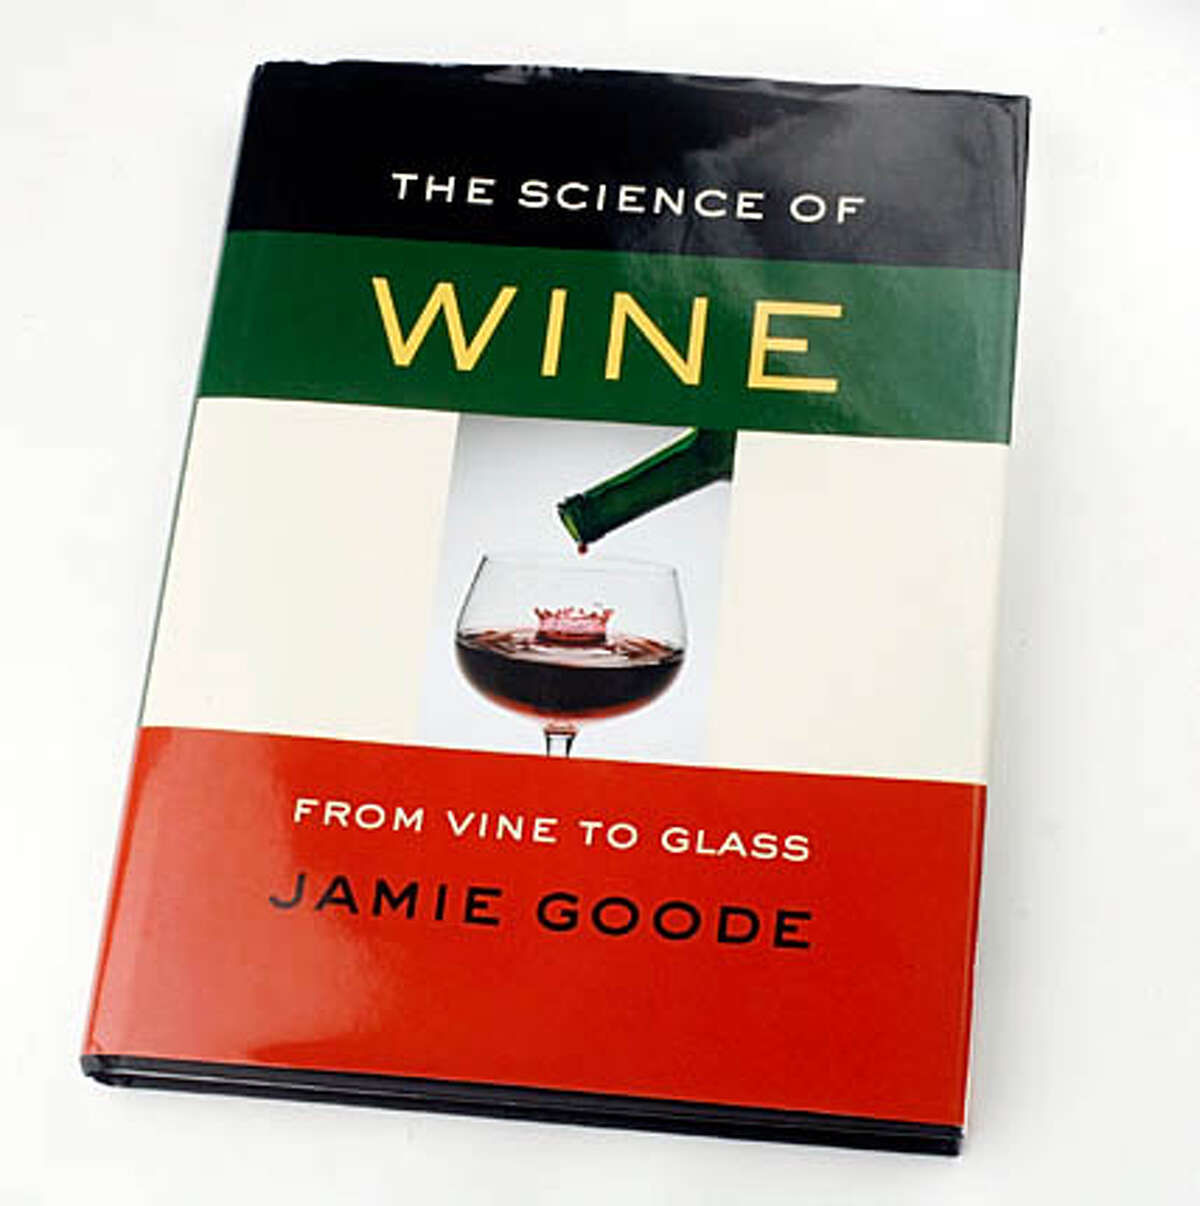 winebook020001_mk.JPG The science of wine: from vine to glass by Jamie Goode Mike Kepka / The San Francisco Chronicle MANDATORY CREDIT FOR PHOTOG AND SF CHRONICLE/ -MAGS OUT